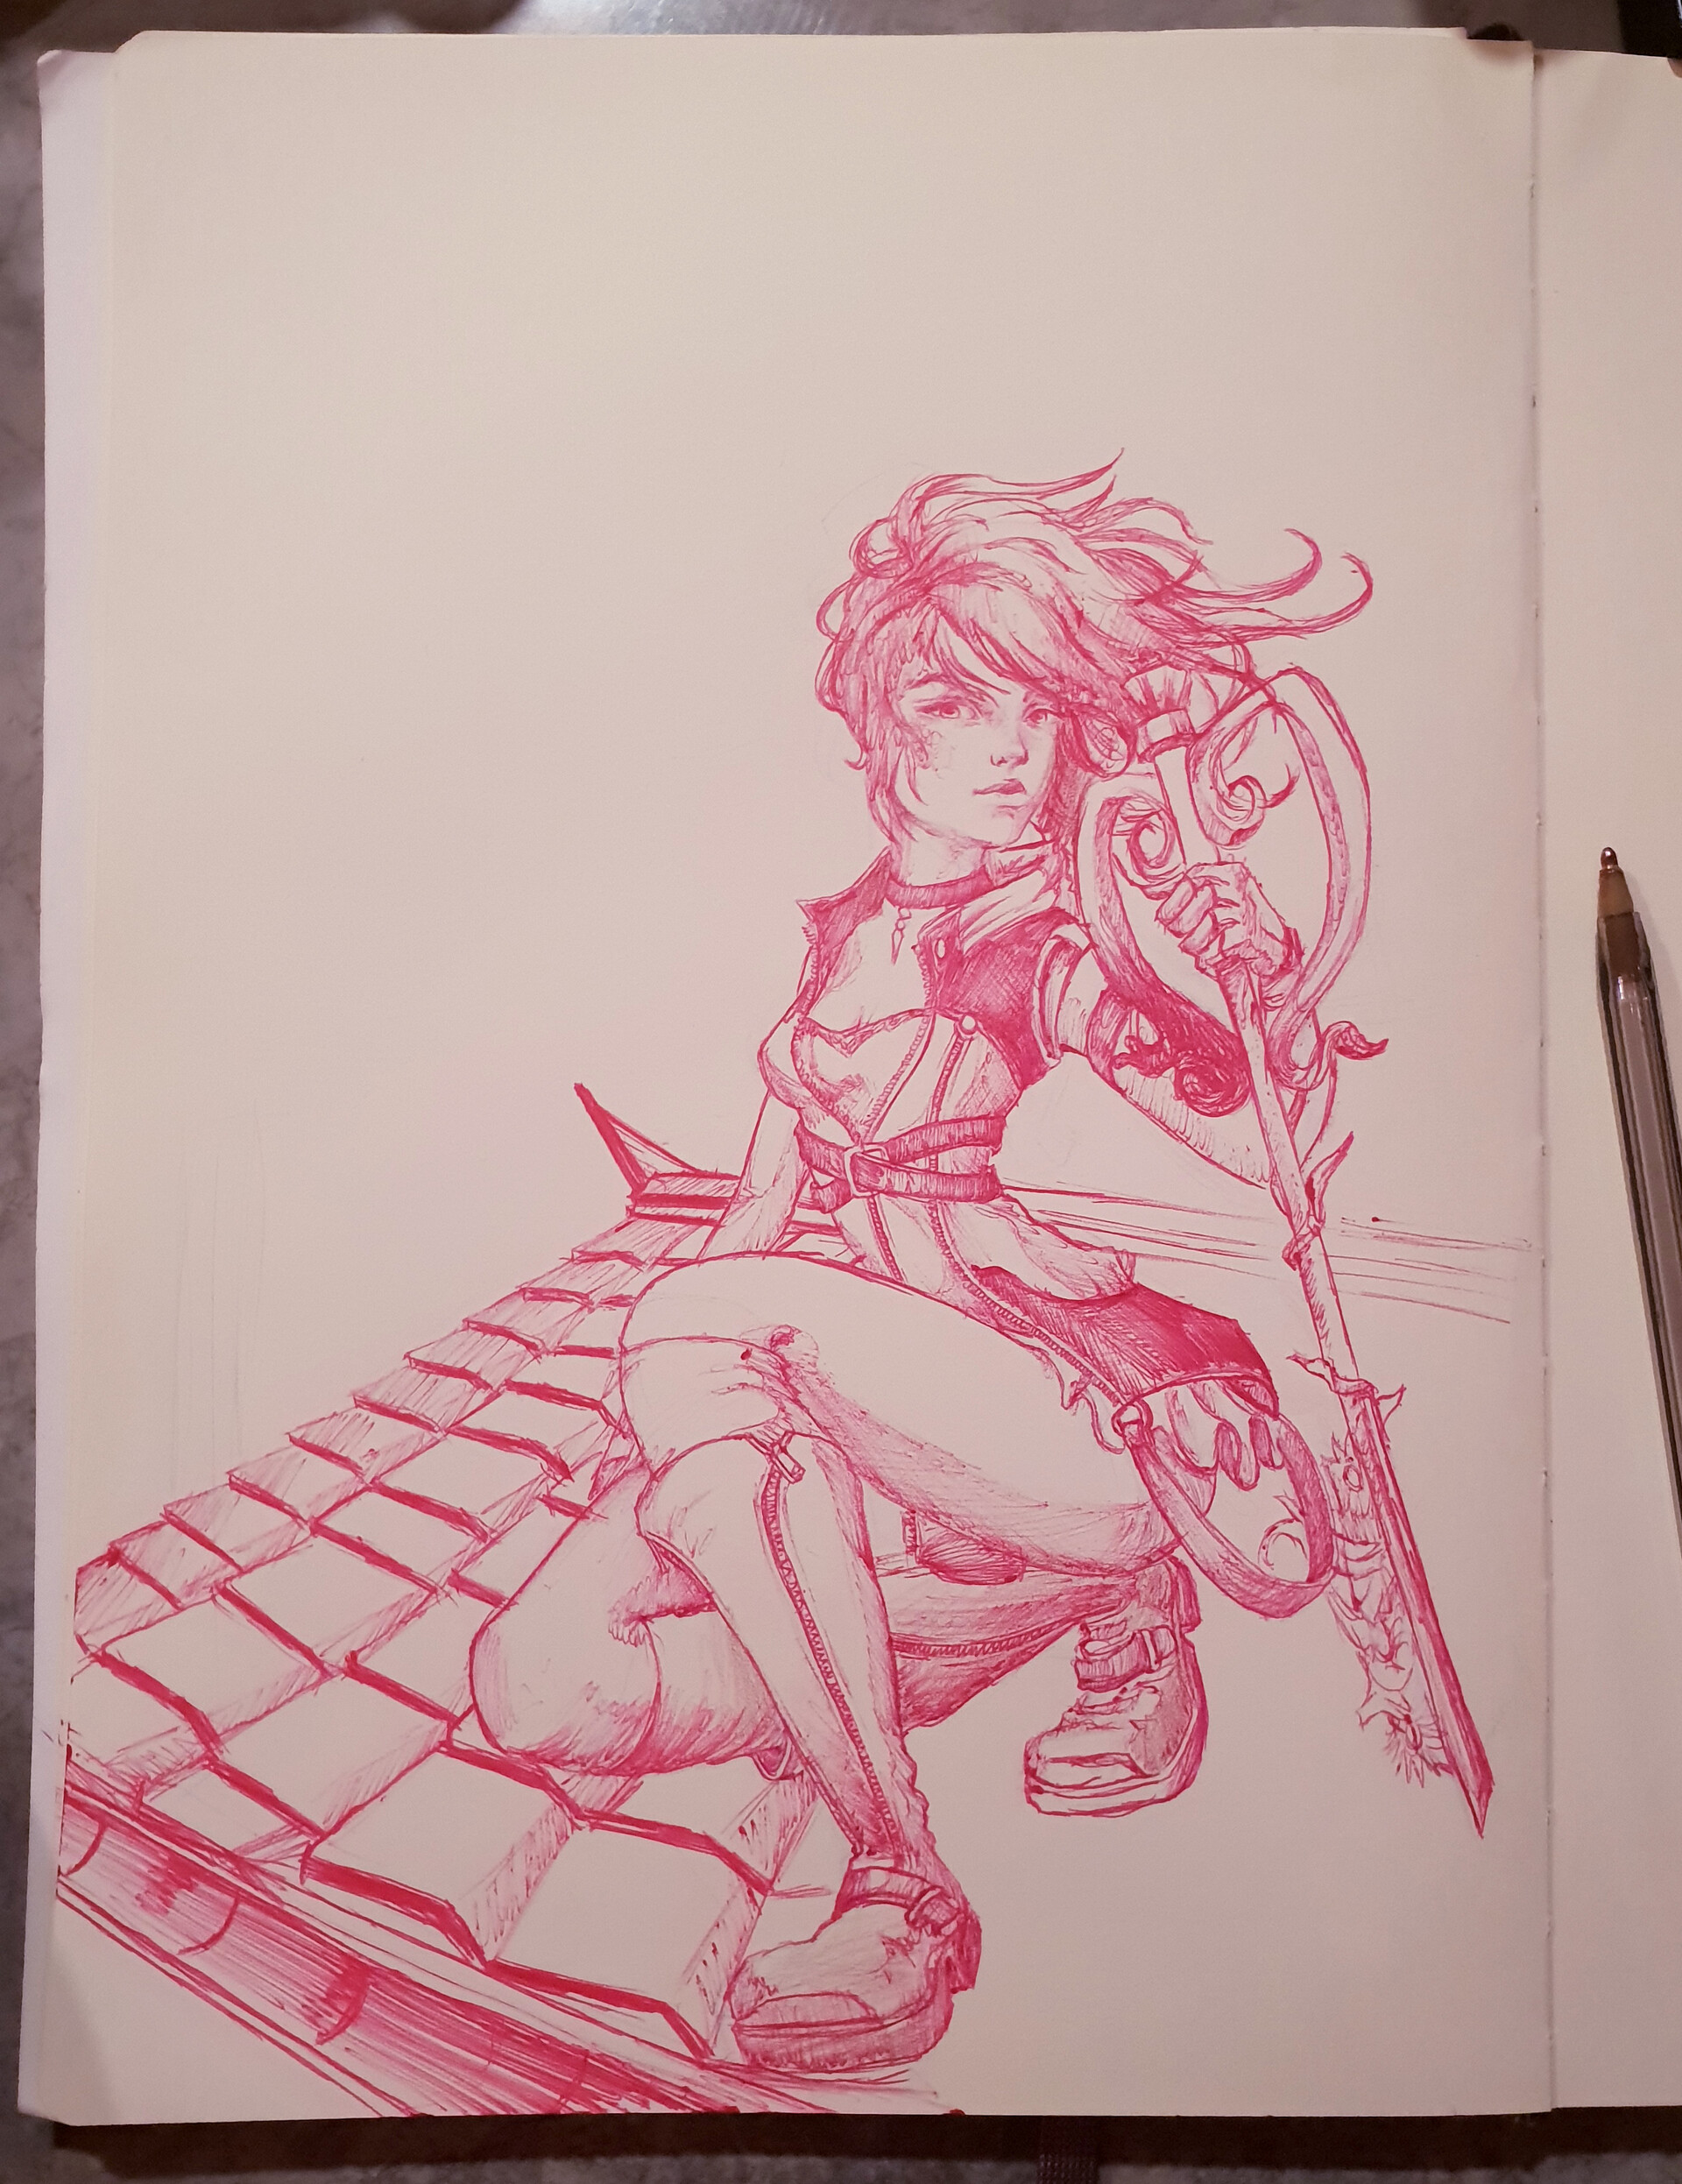 original sketch in pink biro